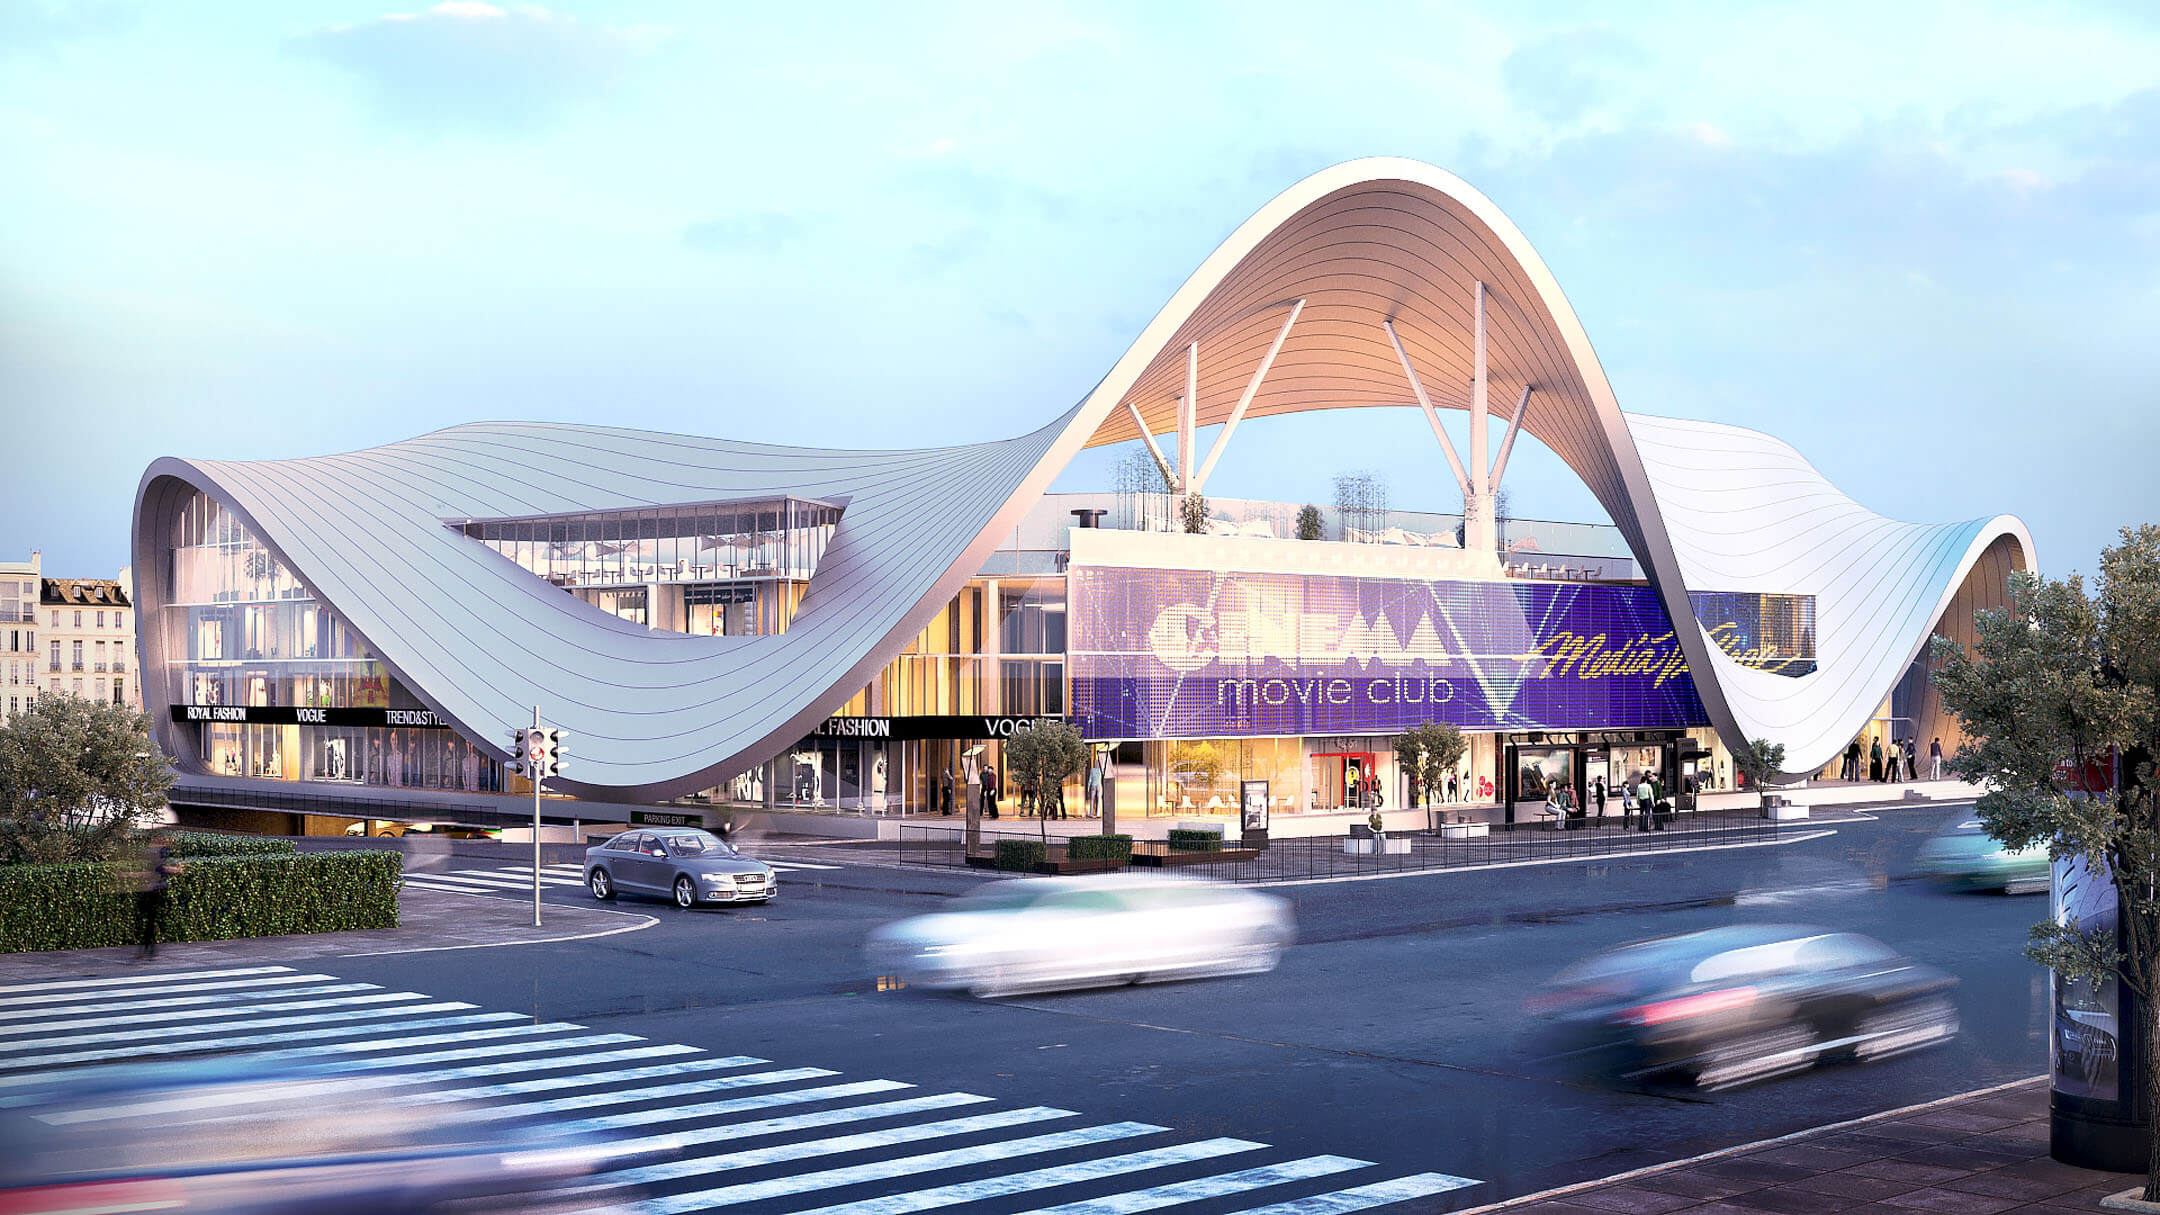 Architectural 3D Visualization of a Mall